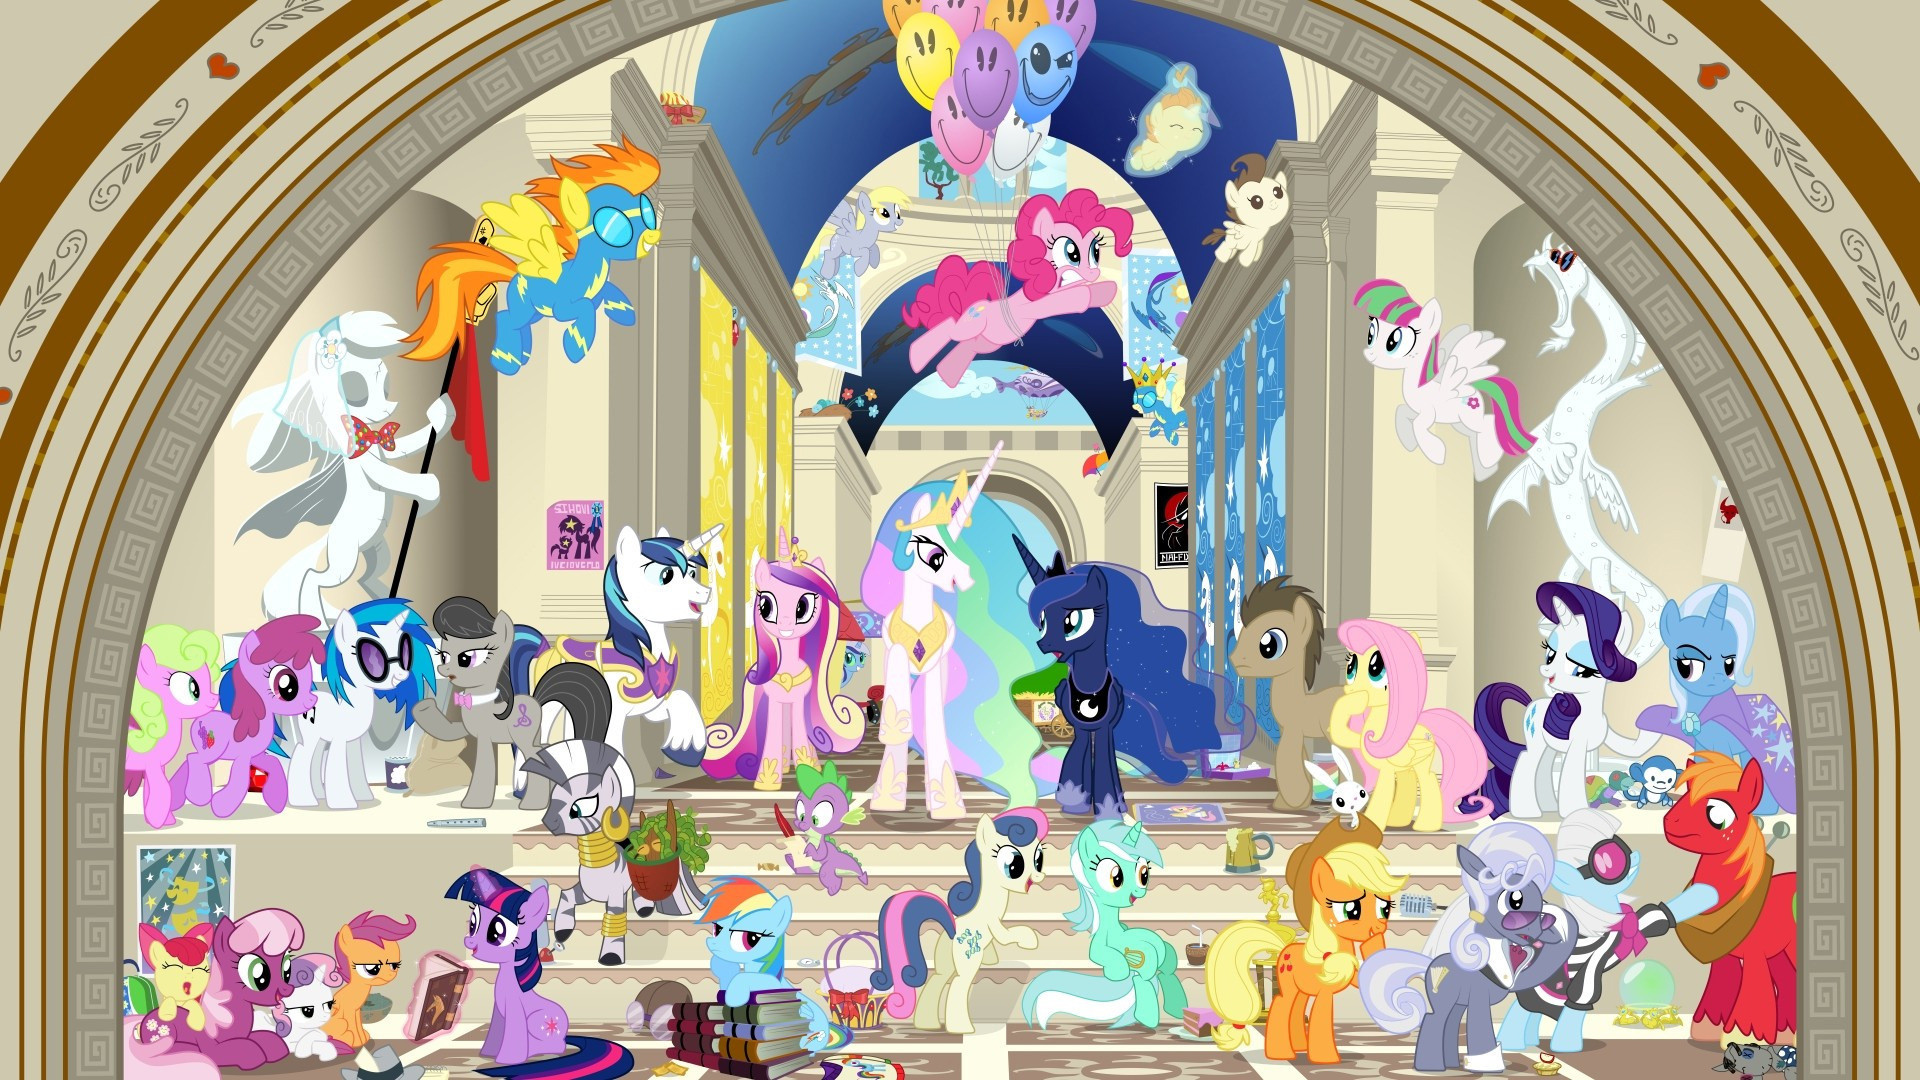 (241) /collab/ – MLP FIM Android LiveWallpaper